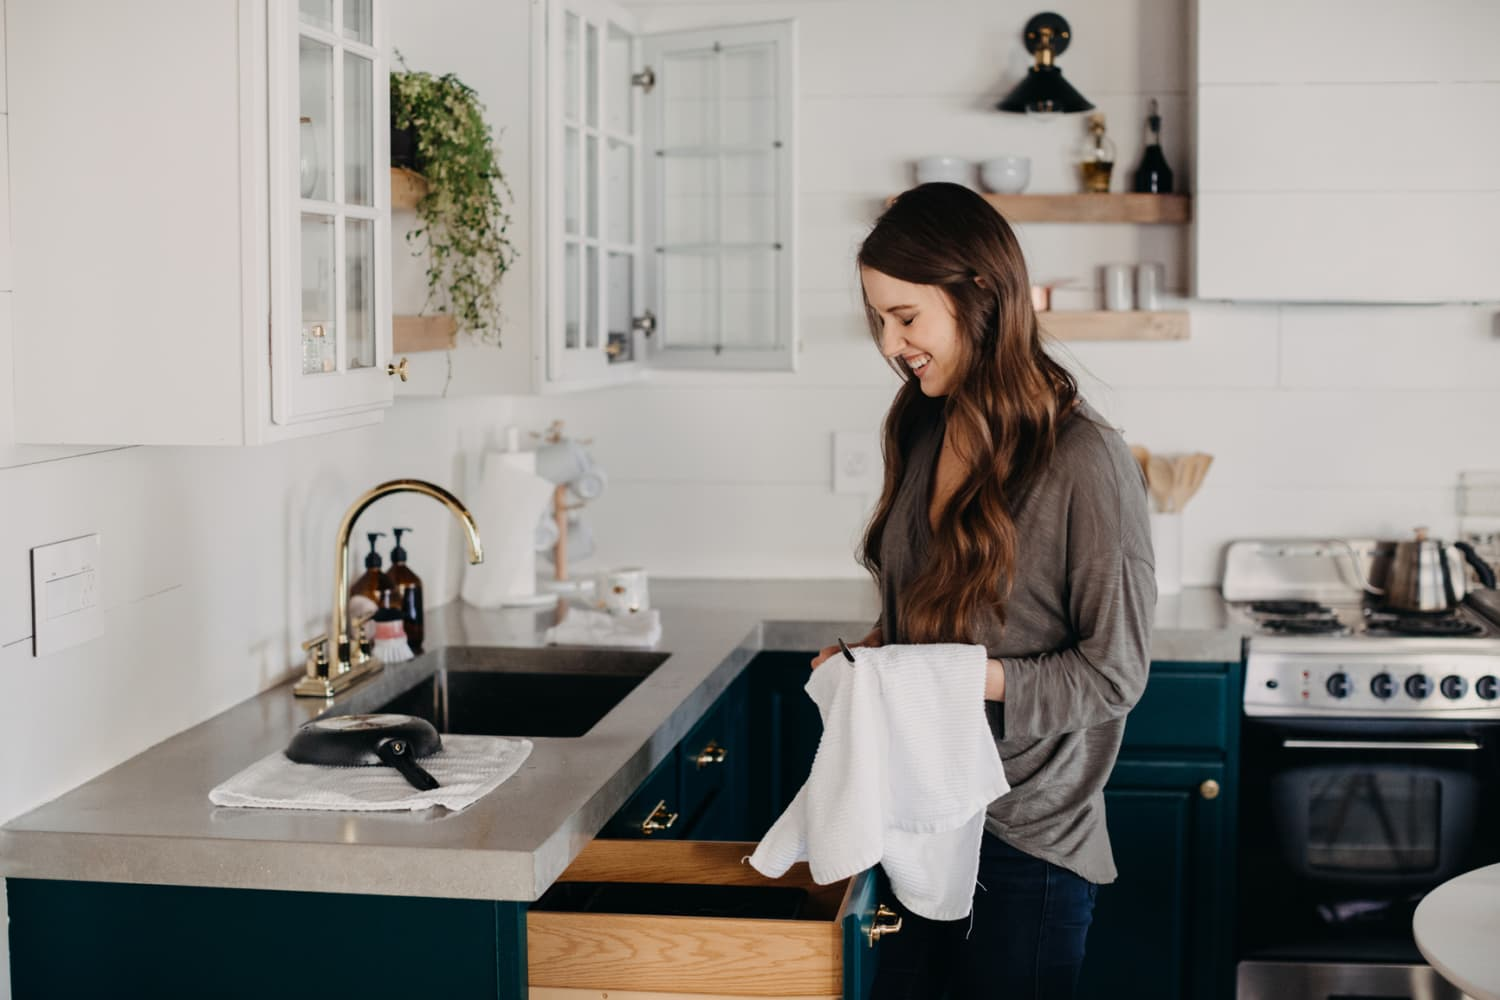 4 Cheap Kitchen Cabinet Upgrades Home Stagers Swear By